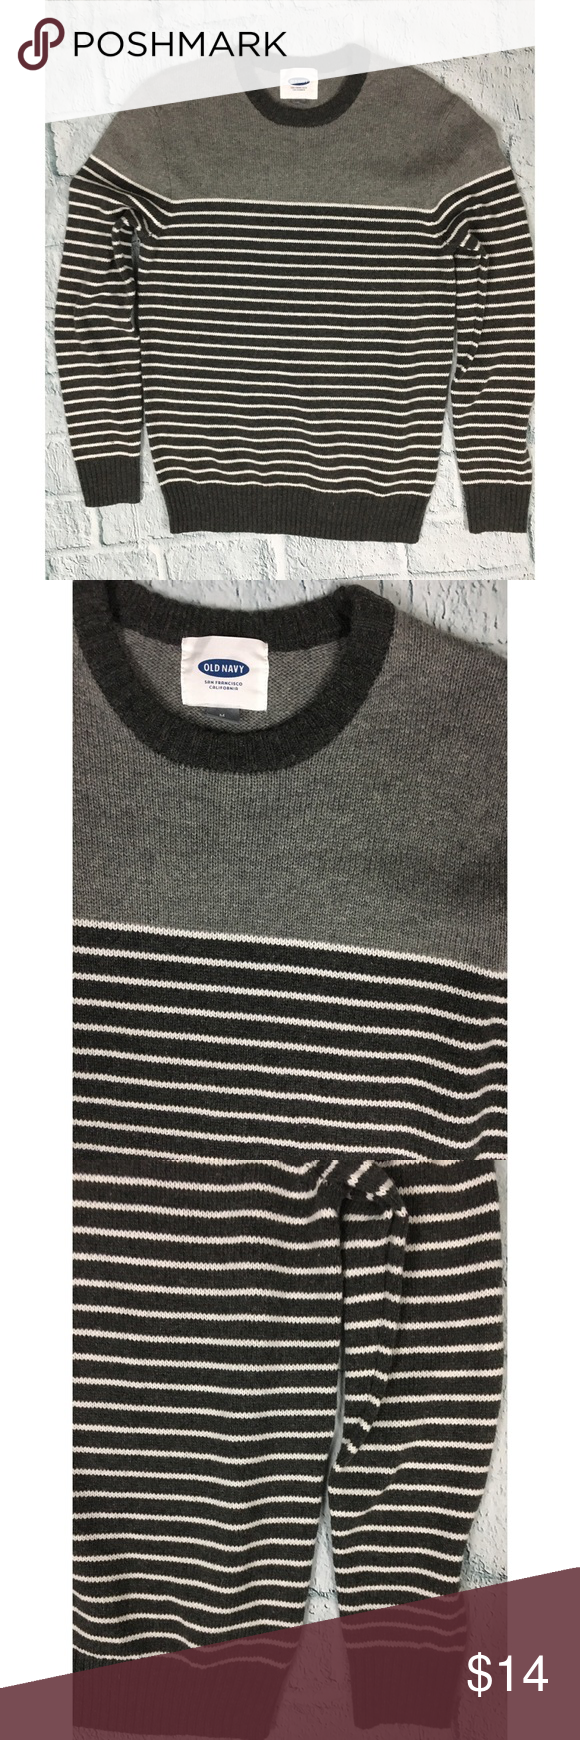 Old Navy Men's Gray Crewneck Striped Sweater Old Navy Men's Gray ...